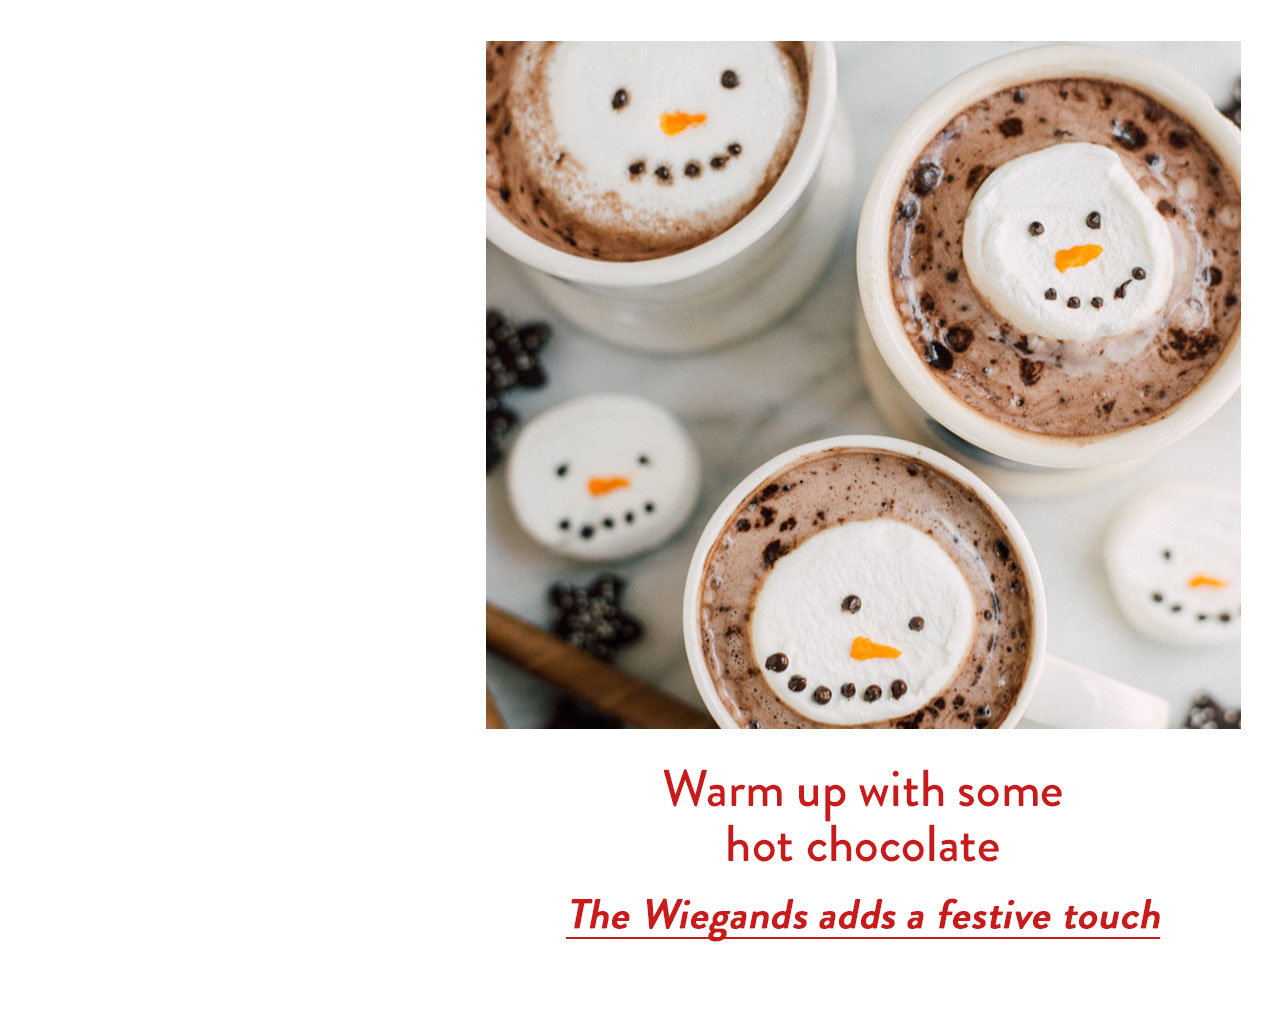 Warm up with some hot chocolate